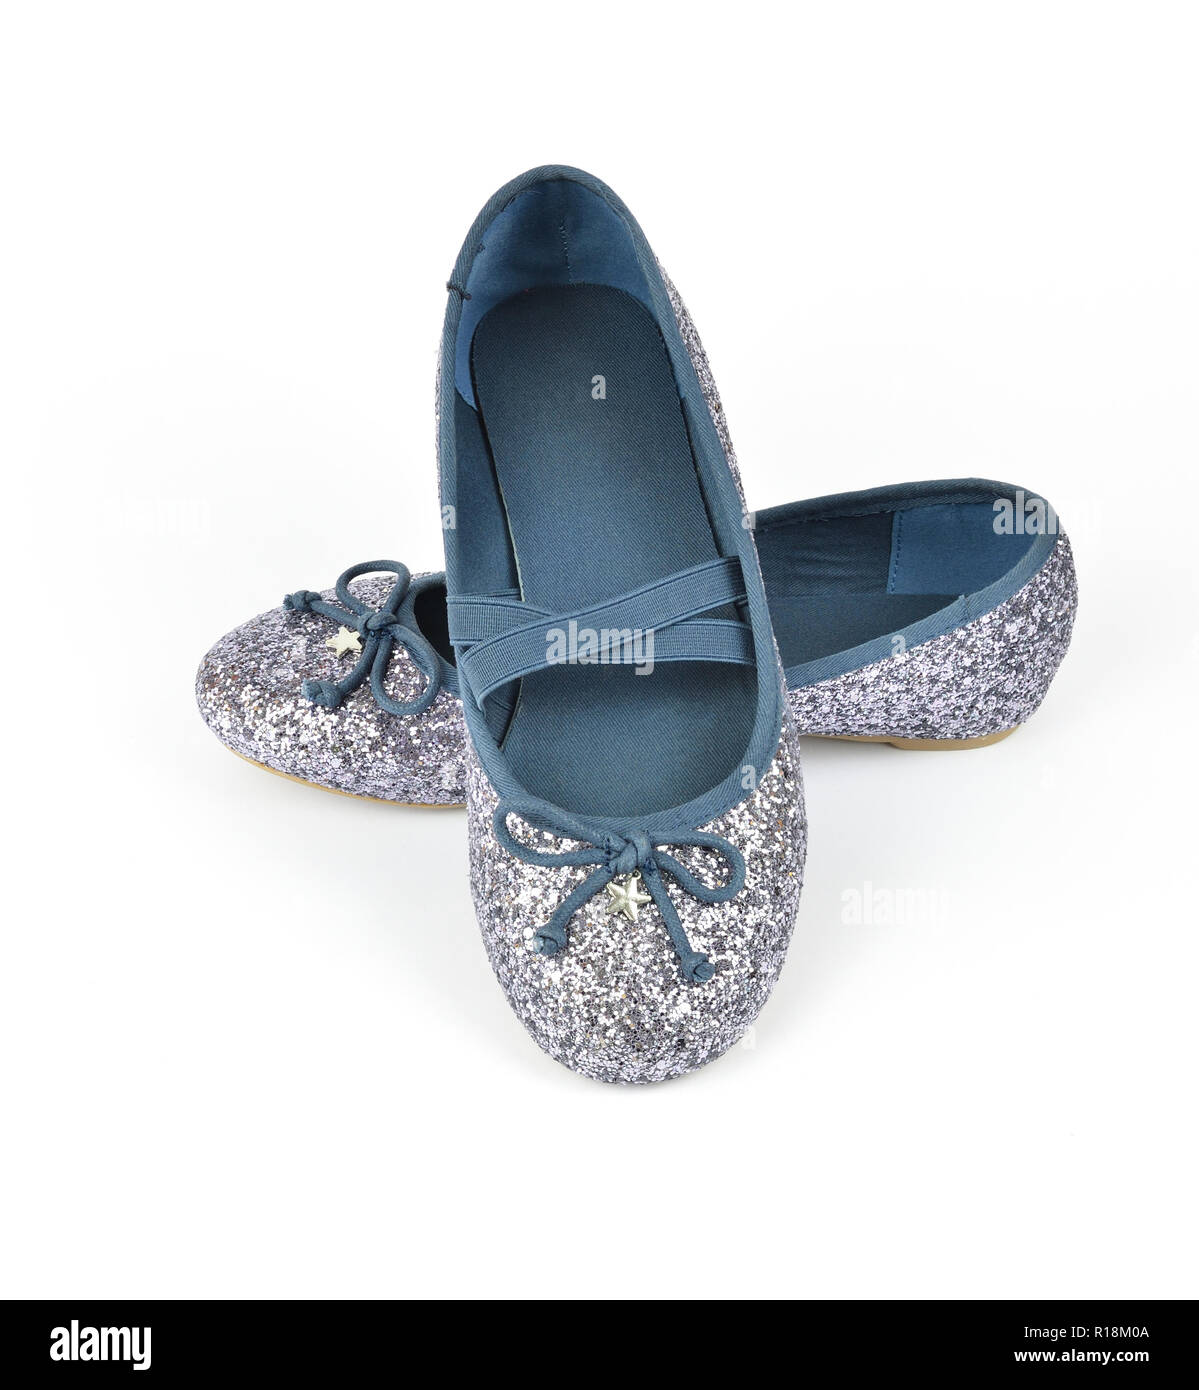 Shimmer silver blue ballerina flat shoes a small bow and with crossed elastic drawstrings on white background - Stock Image